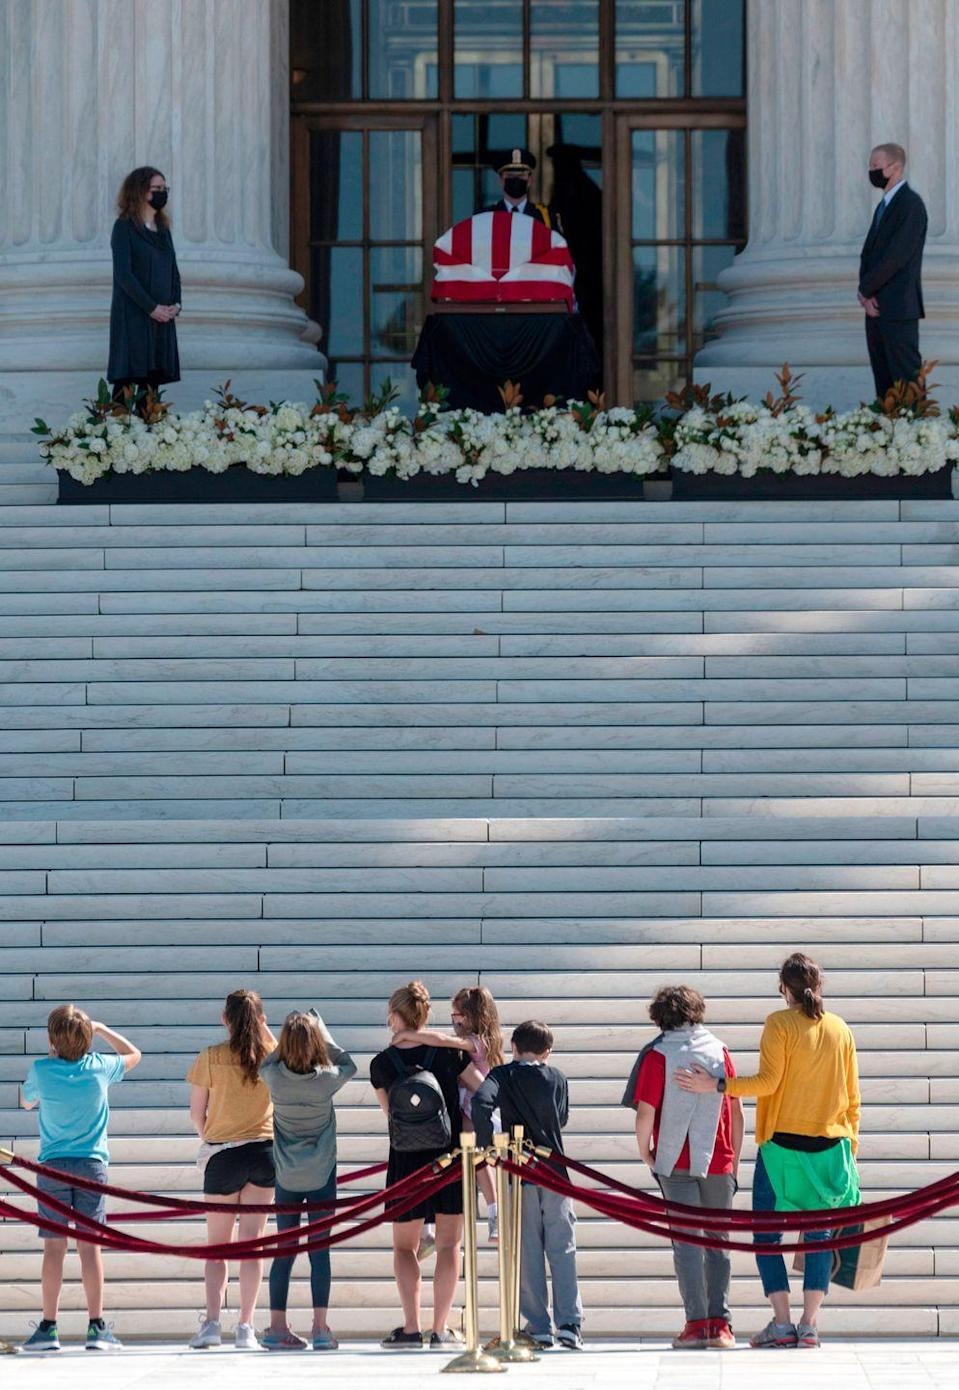 <p>People pay respects as Justice Ruth Bader Ginsburg lies in repose in front of the US Supreme Court in Washington, DC on September 23, 2020.</p>